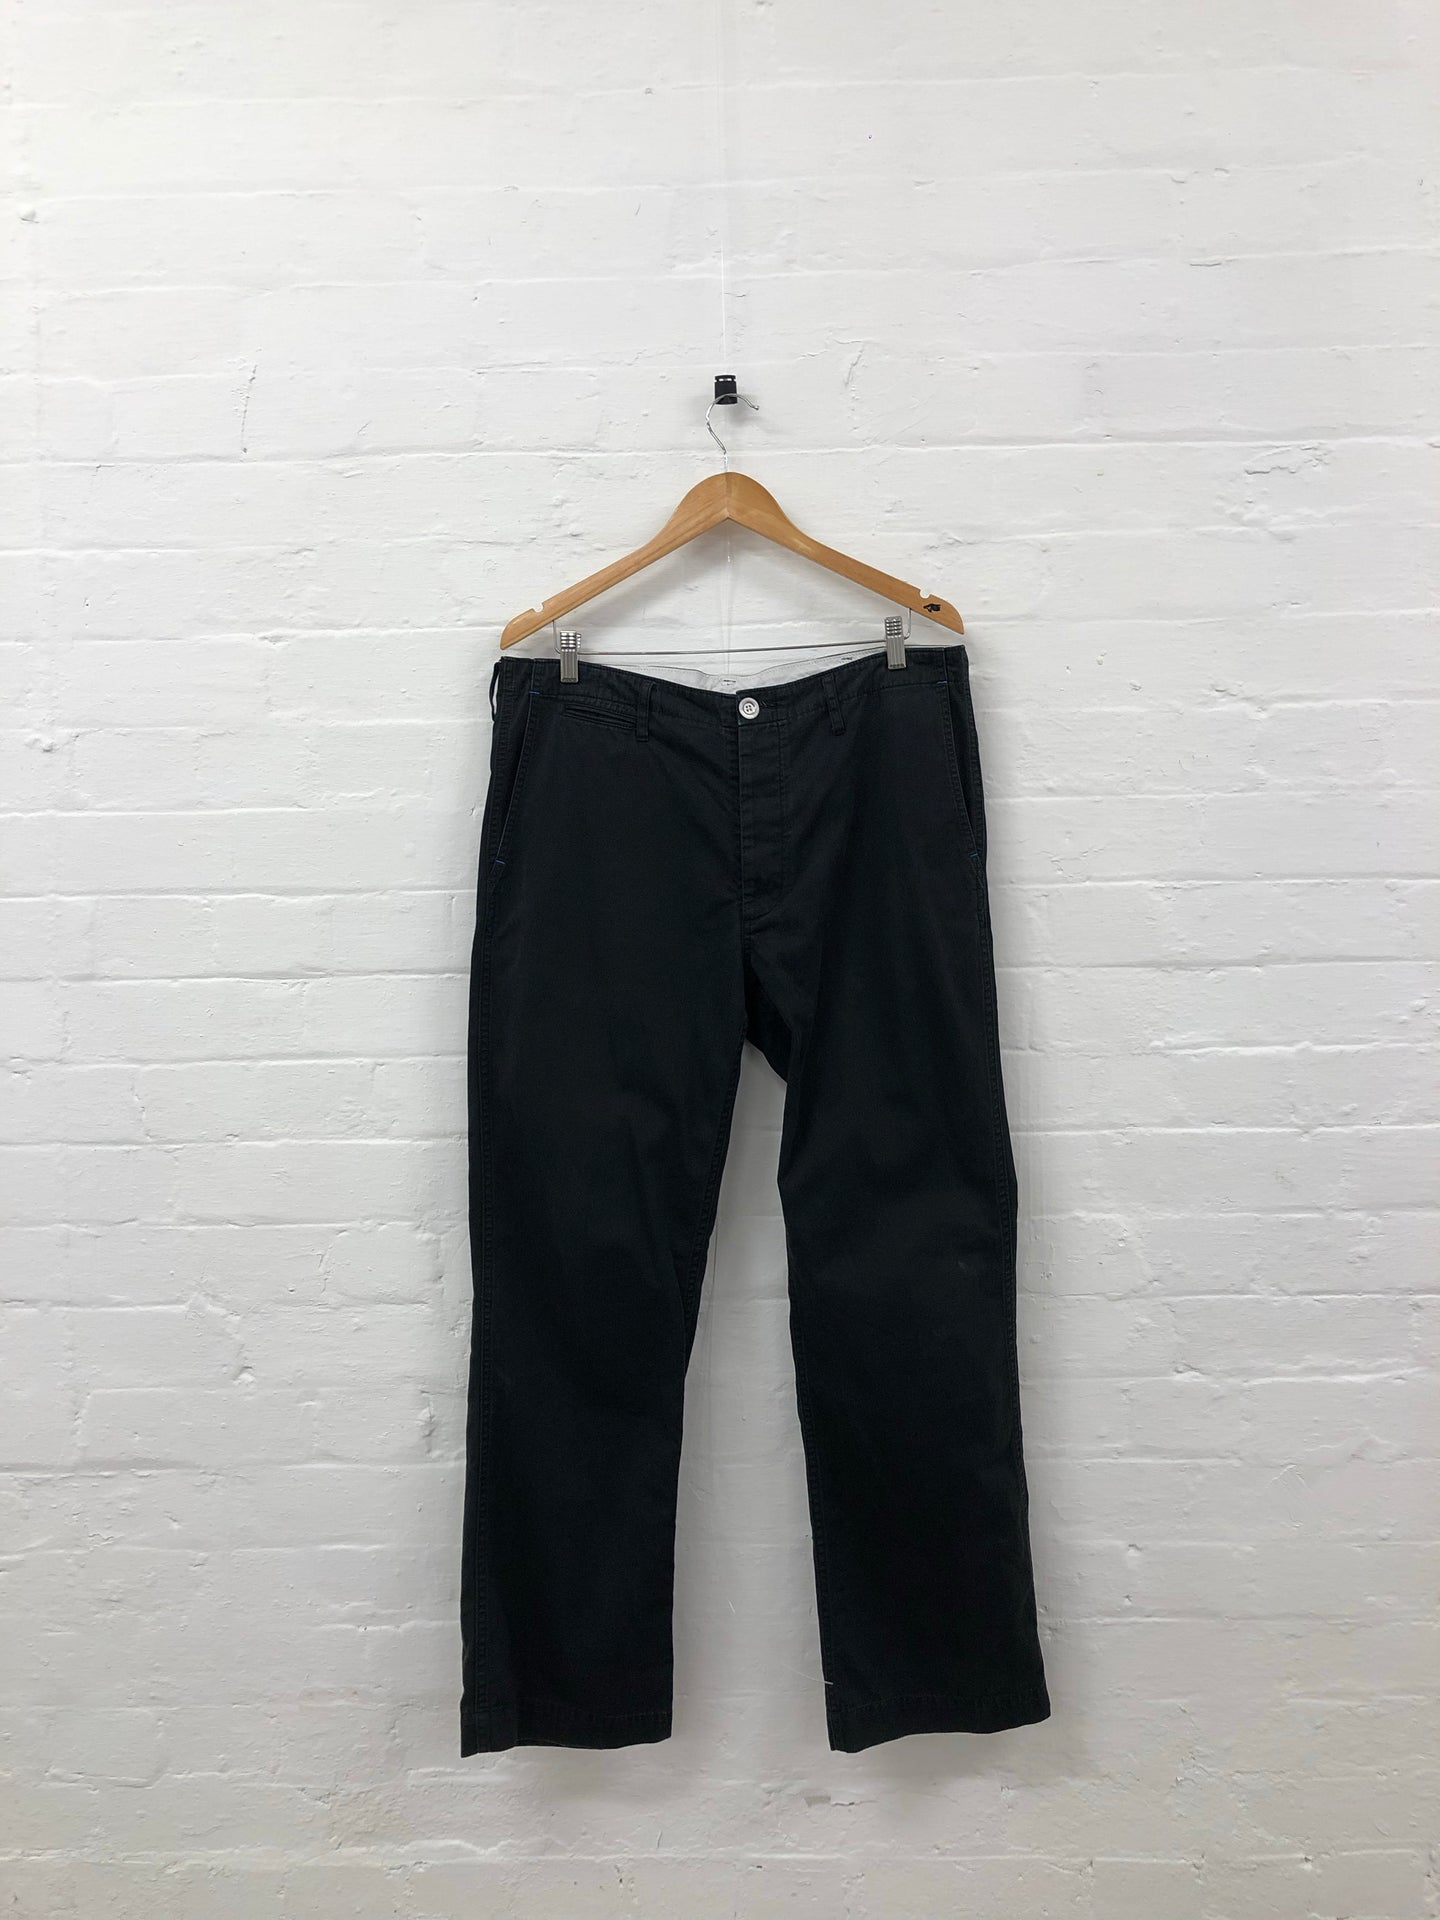 visvim black pants <Br> size xl